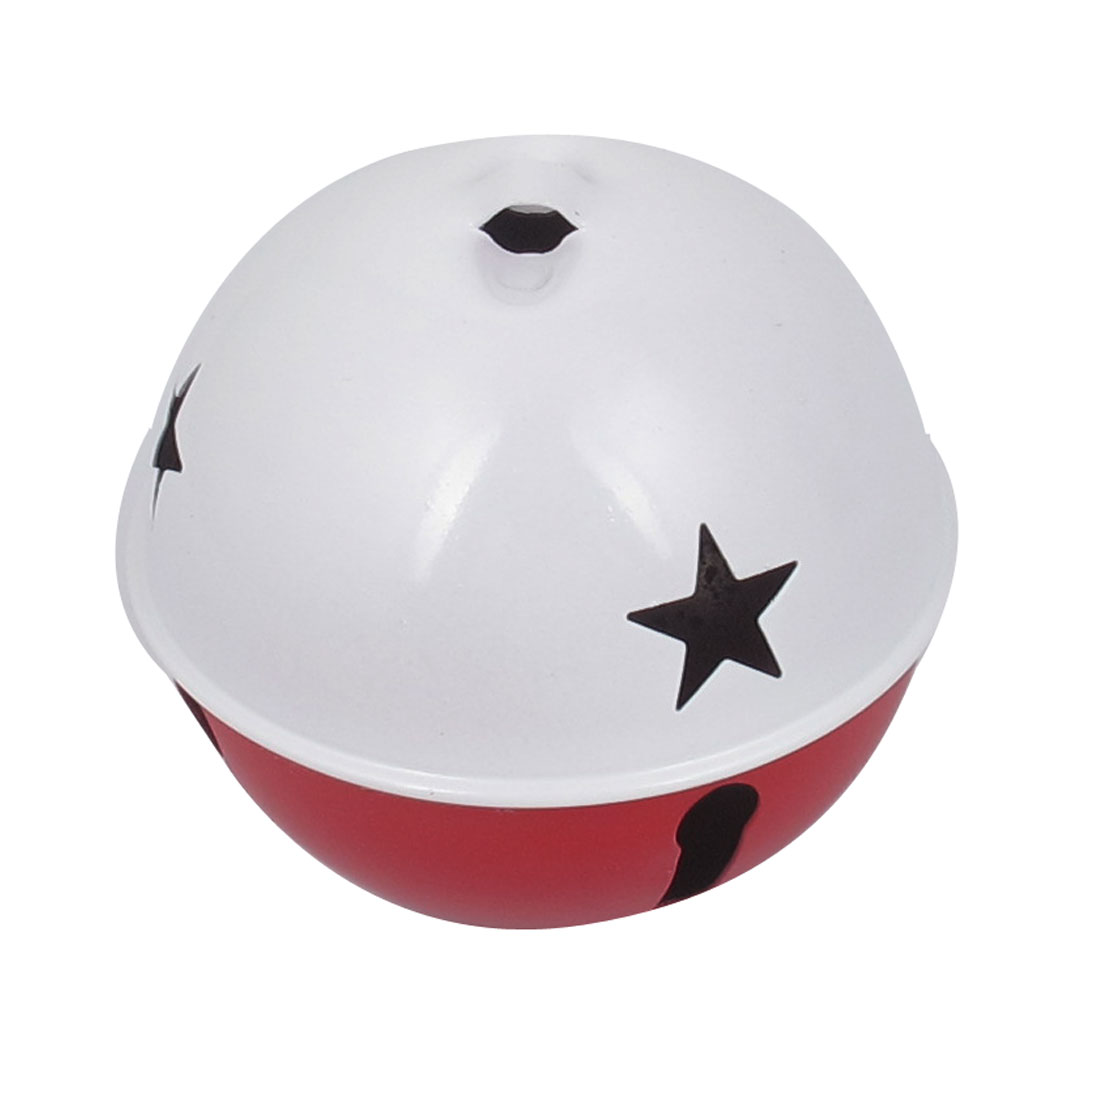 80mm Diameter White Red Metal Star Detail Ball Shape Hollow Out Design Jingle Ring Bell Ornament for Christmas Tree Party